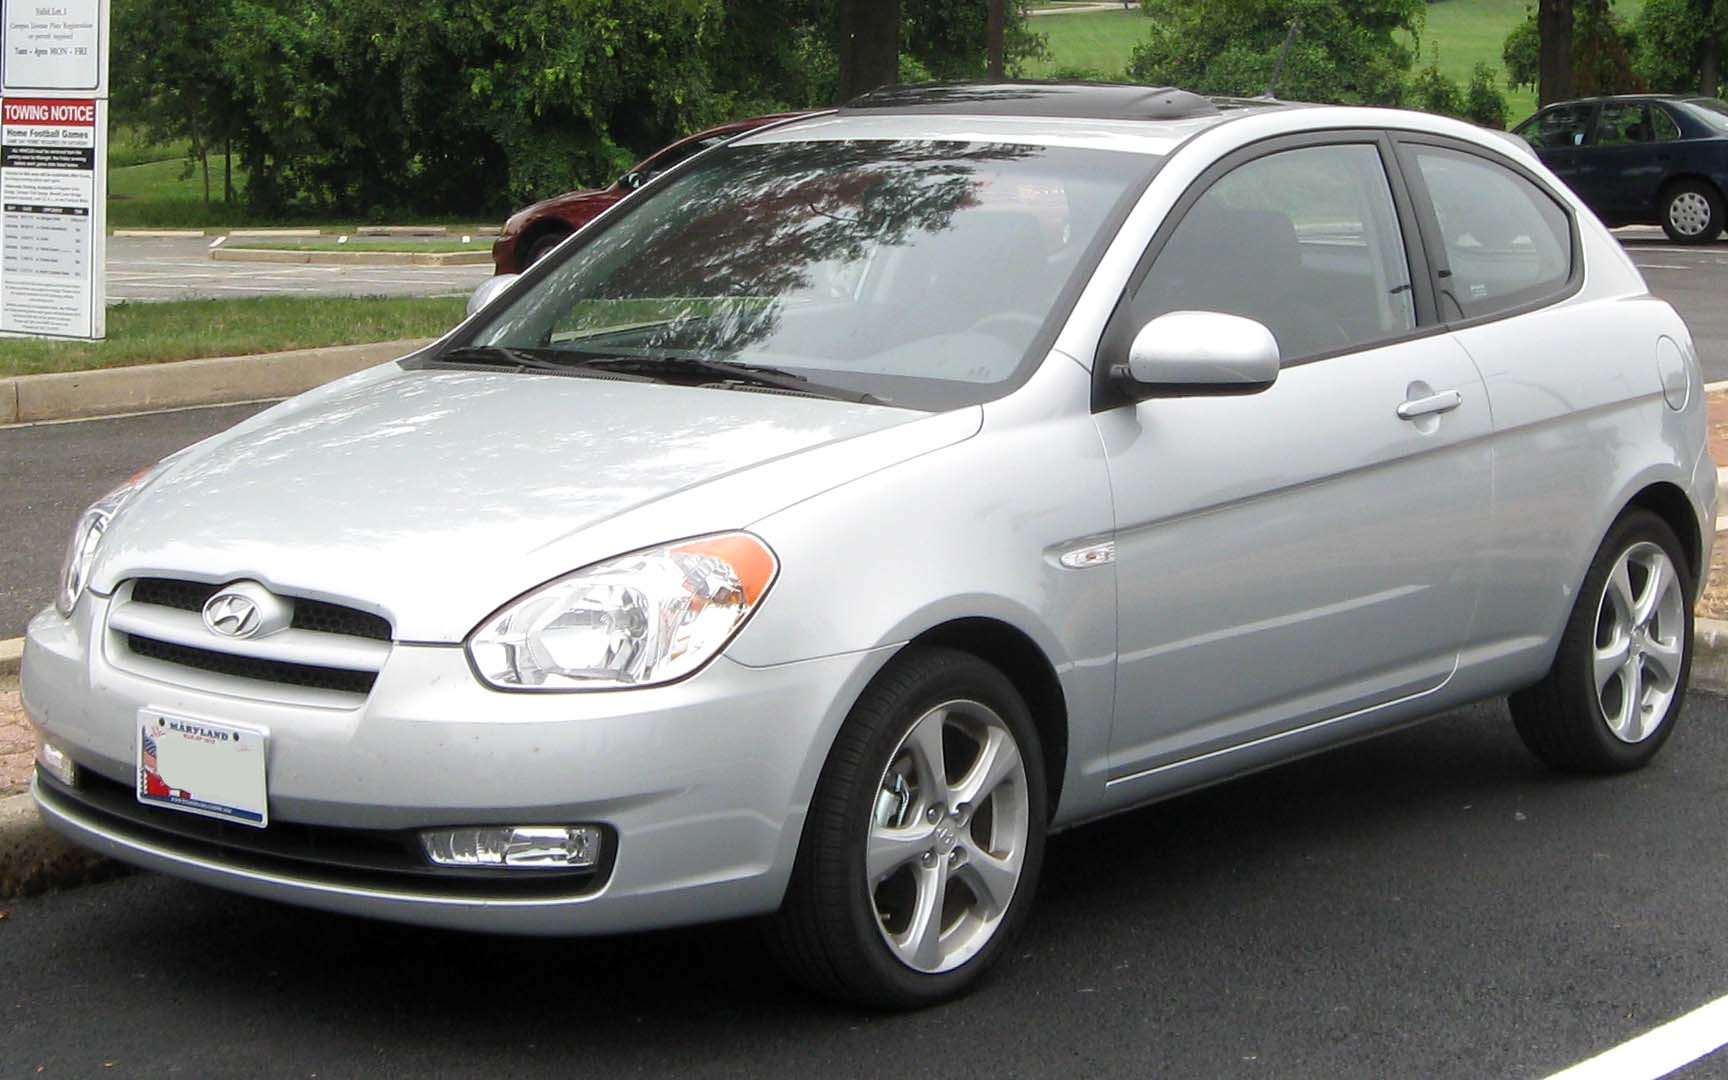 File Hyundai Accent Se Front 09 03 2010 Jpg Wikimedia Commons